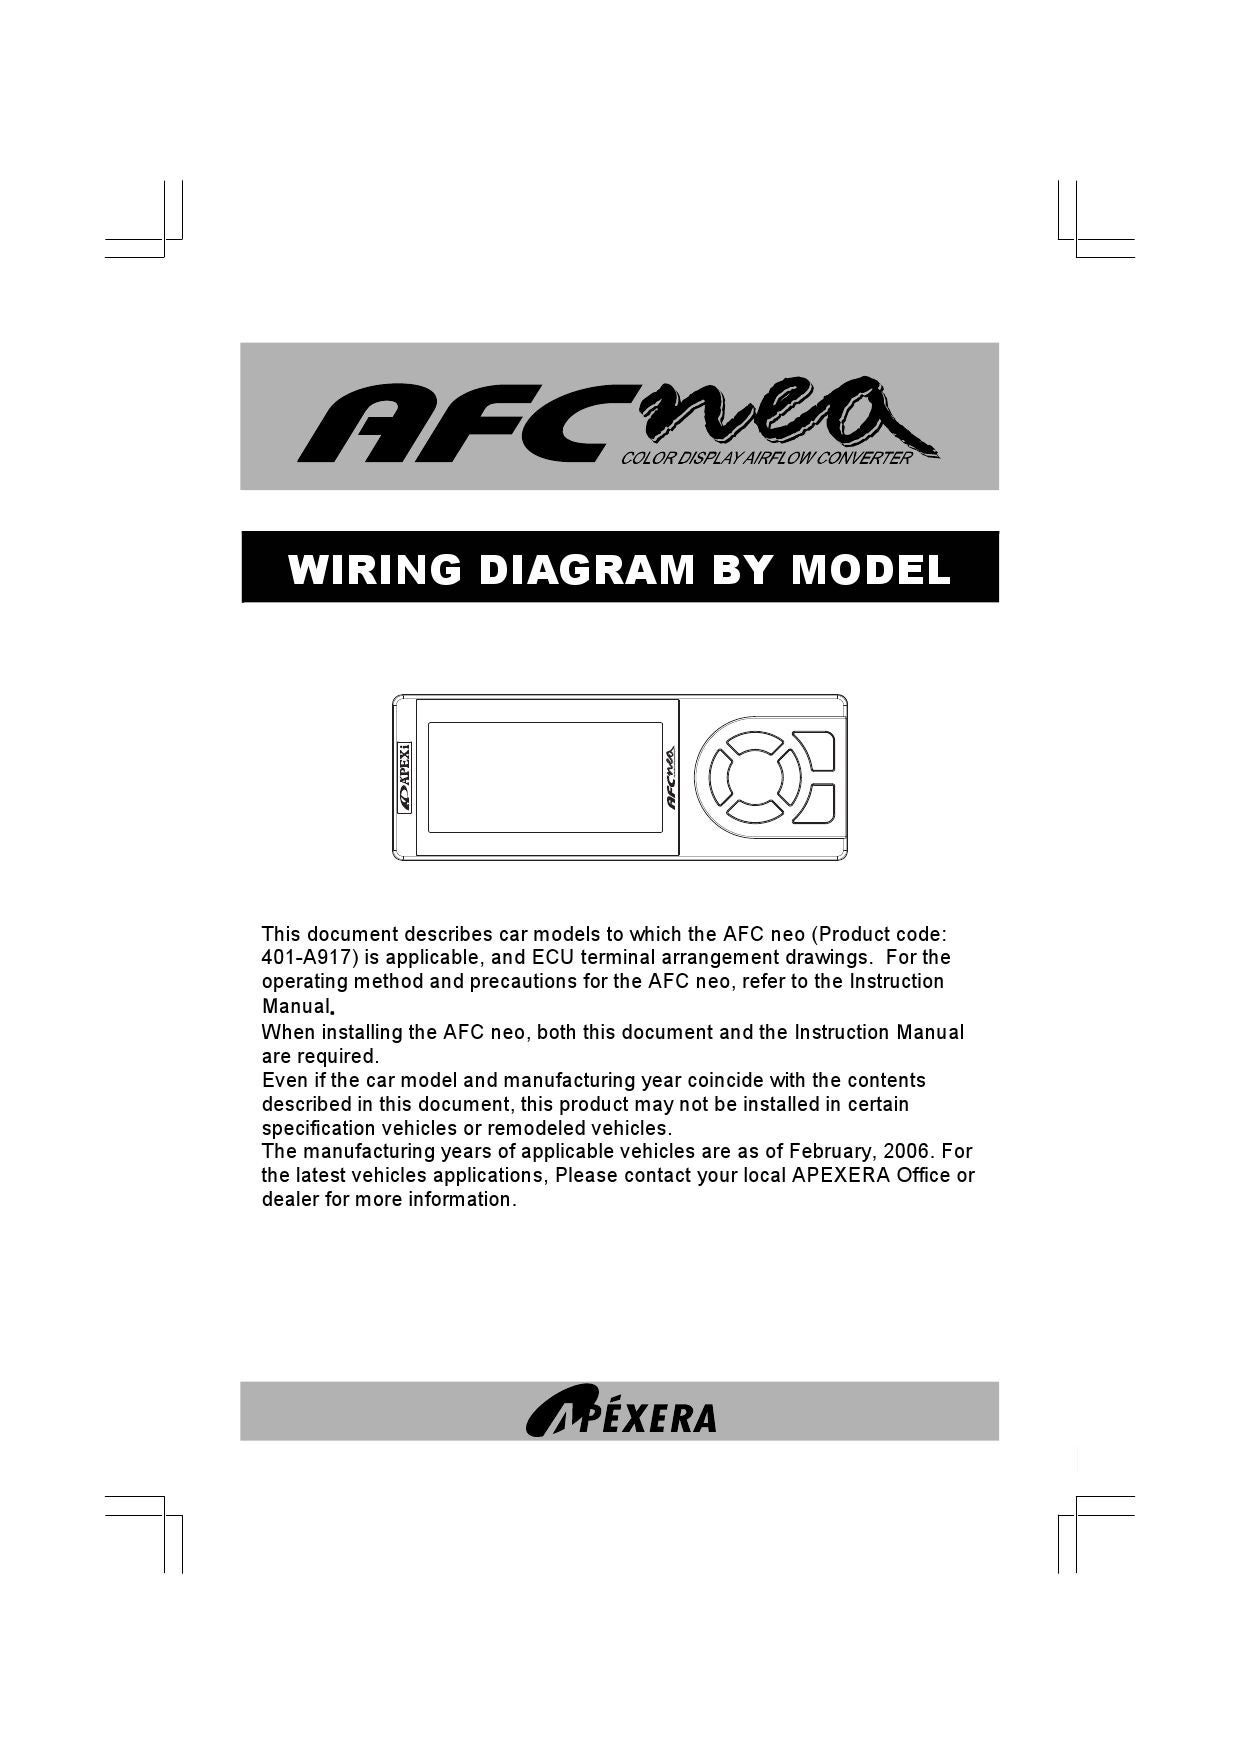 1nz ecu pinout diagram 1nz image wiring diagram neo afc wiring diagram by honda acura club de issuu on 1nz ecu pinout